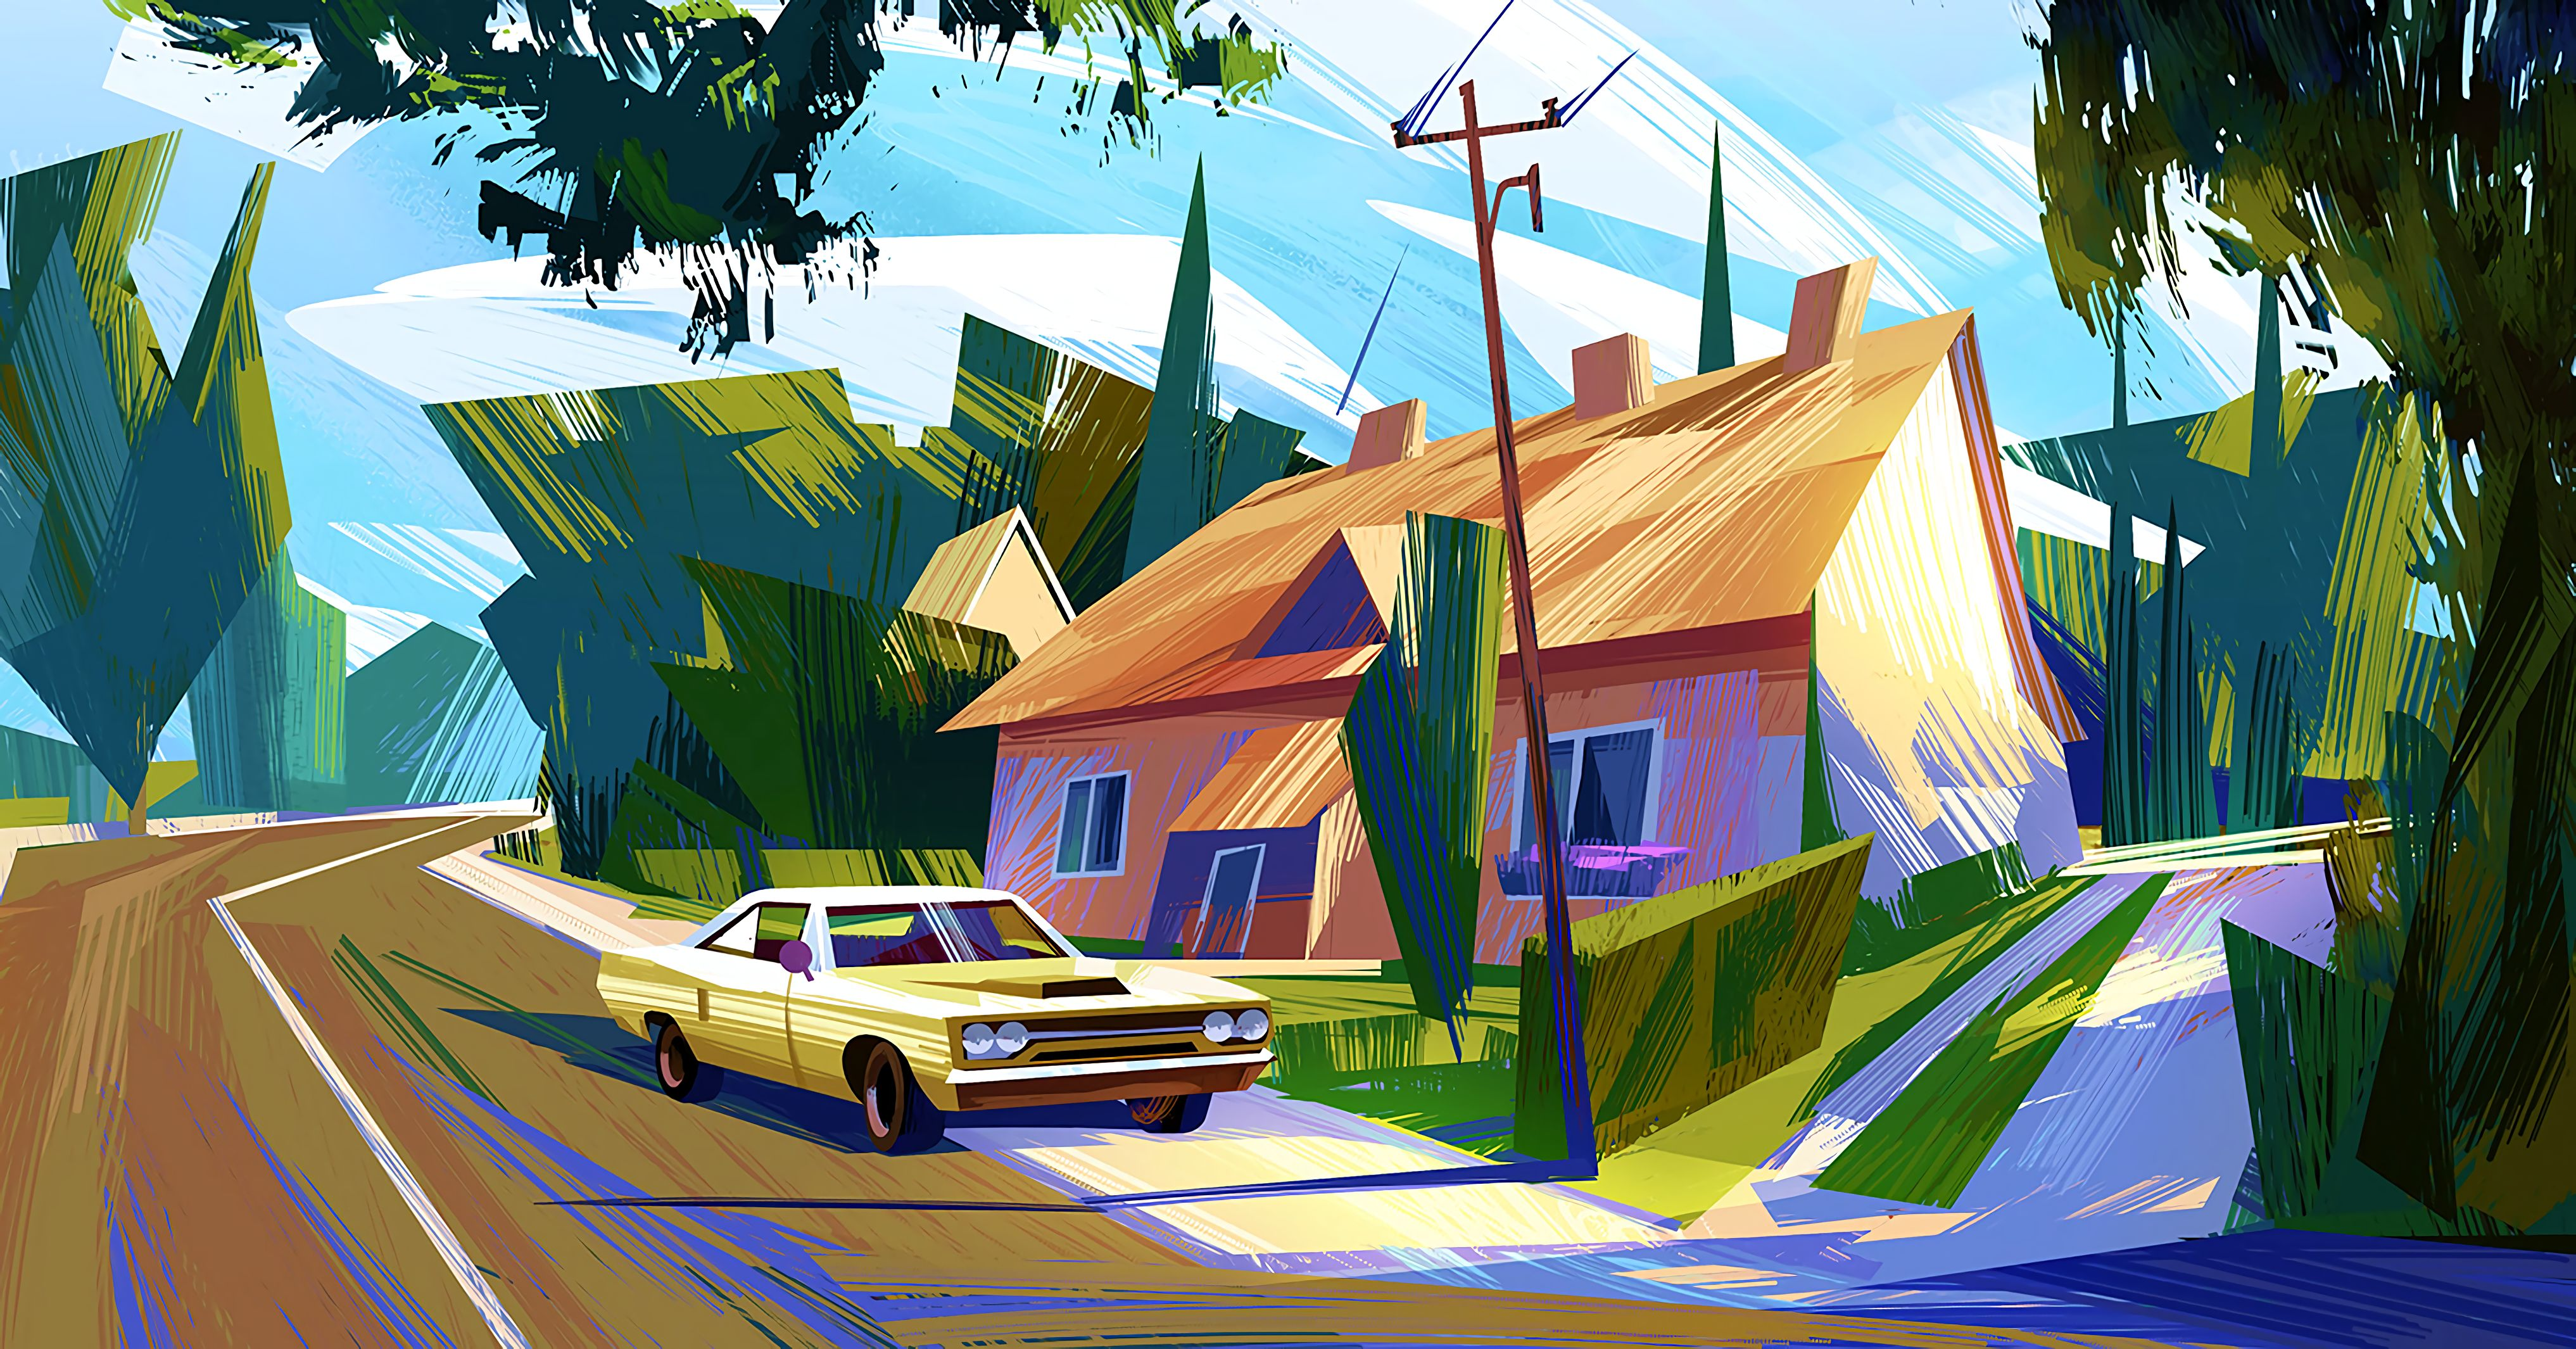 115888 download wallpaper Art, Car, Small House, Lodge, Colorful, Colourful screensavers and pictures for free